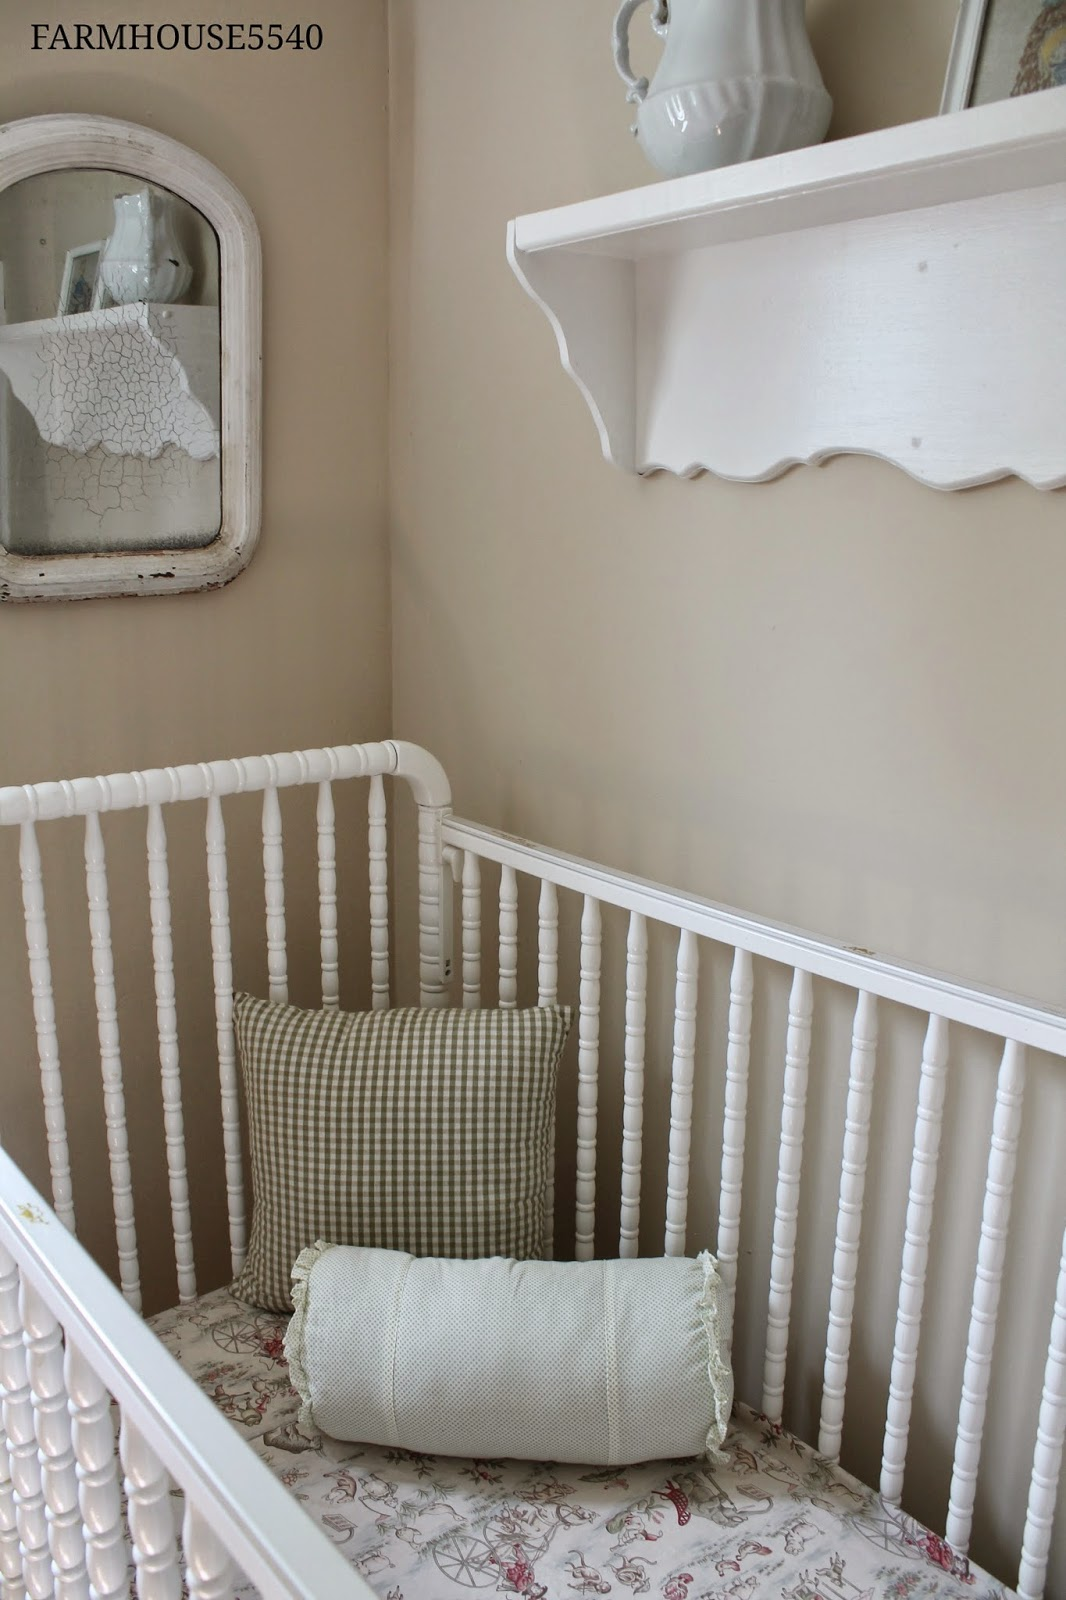 FARMHOUSE 5540 Babys Room Part One